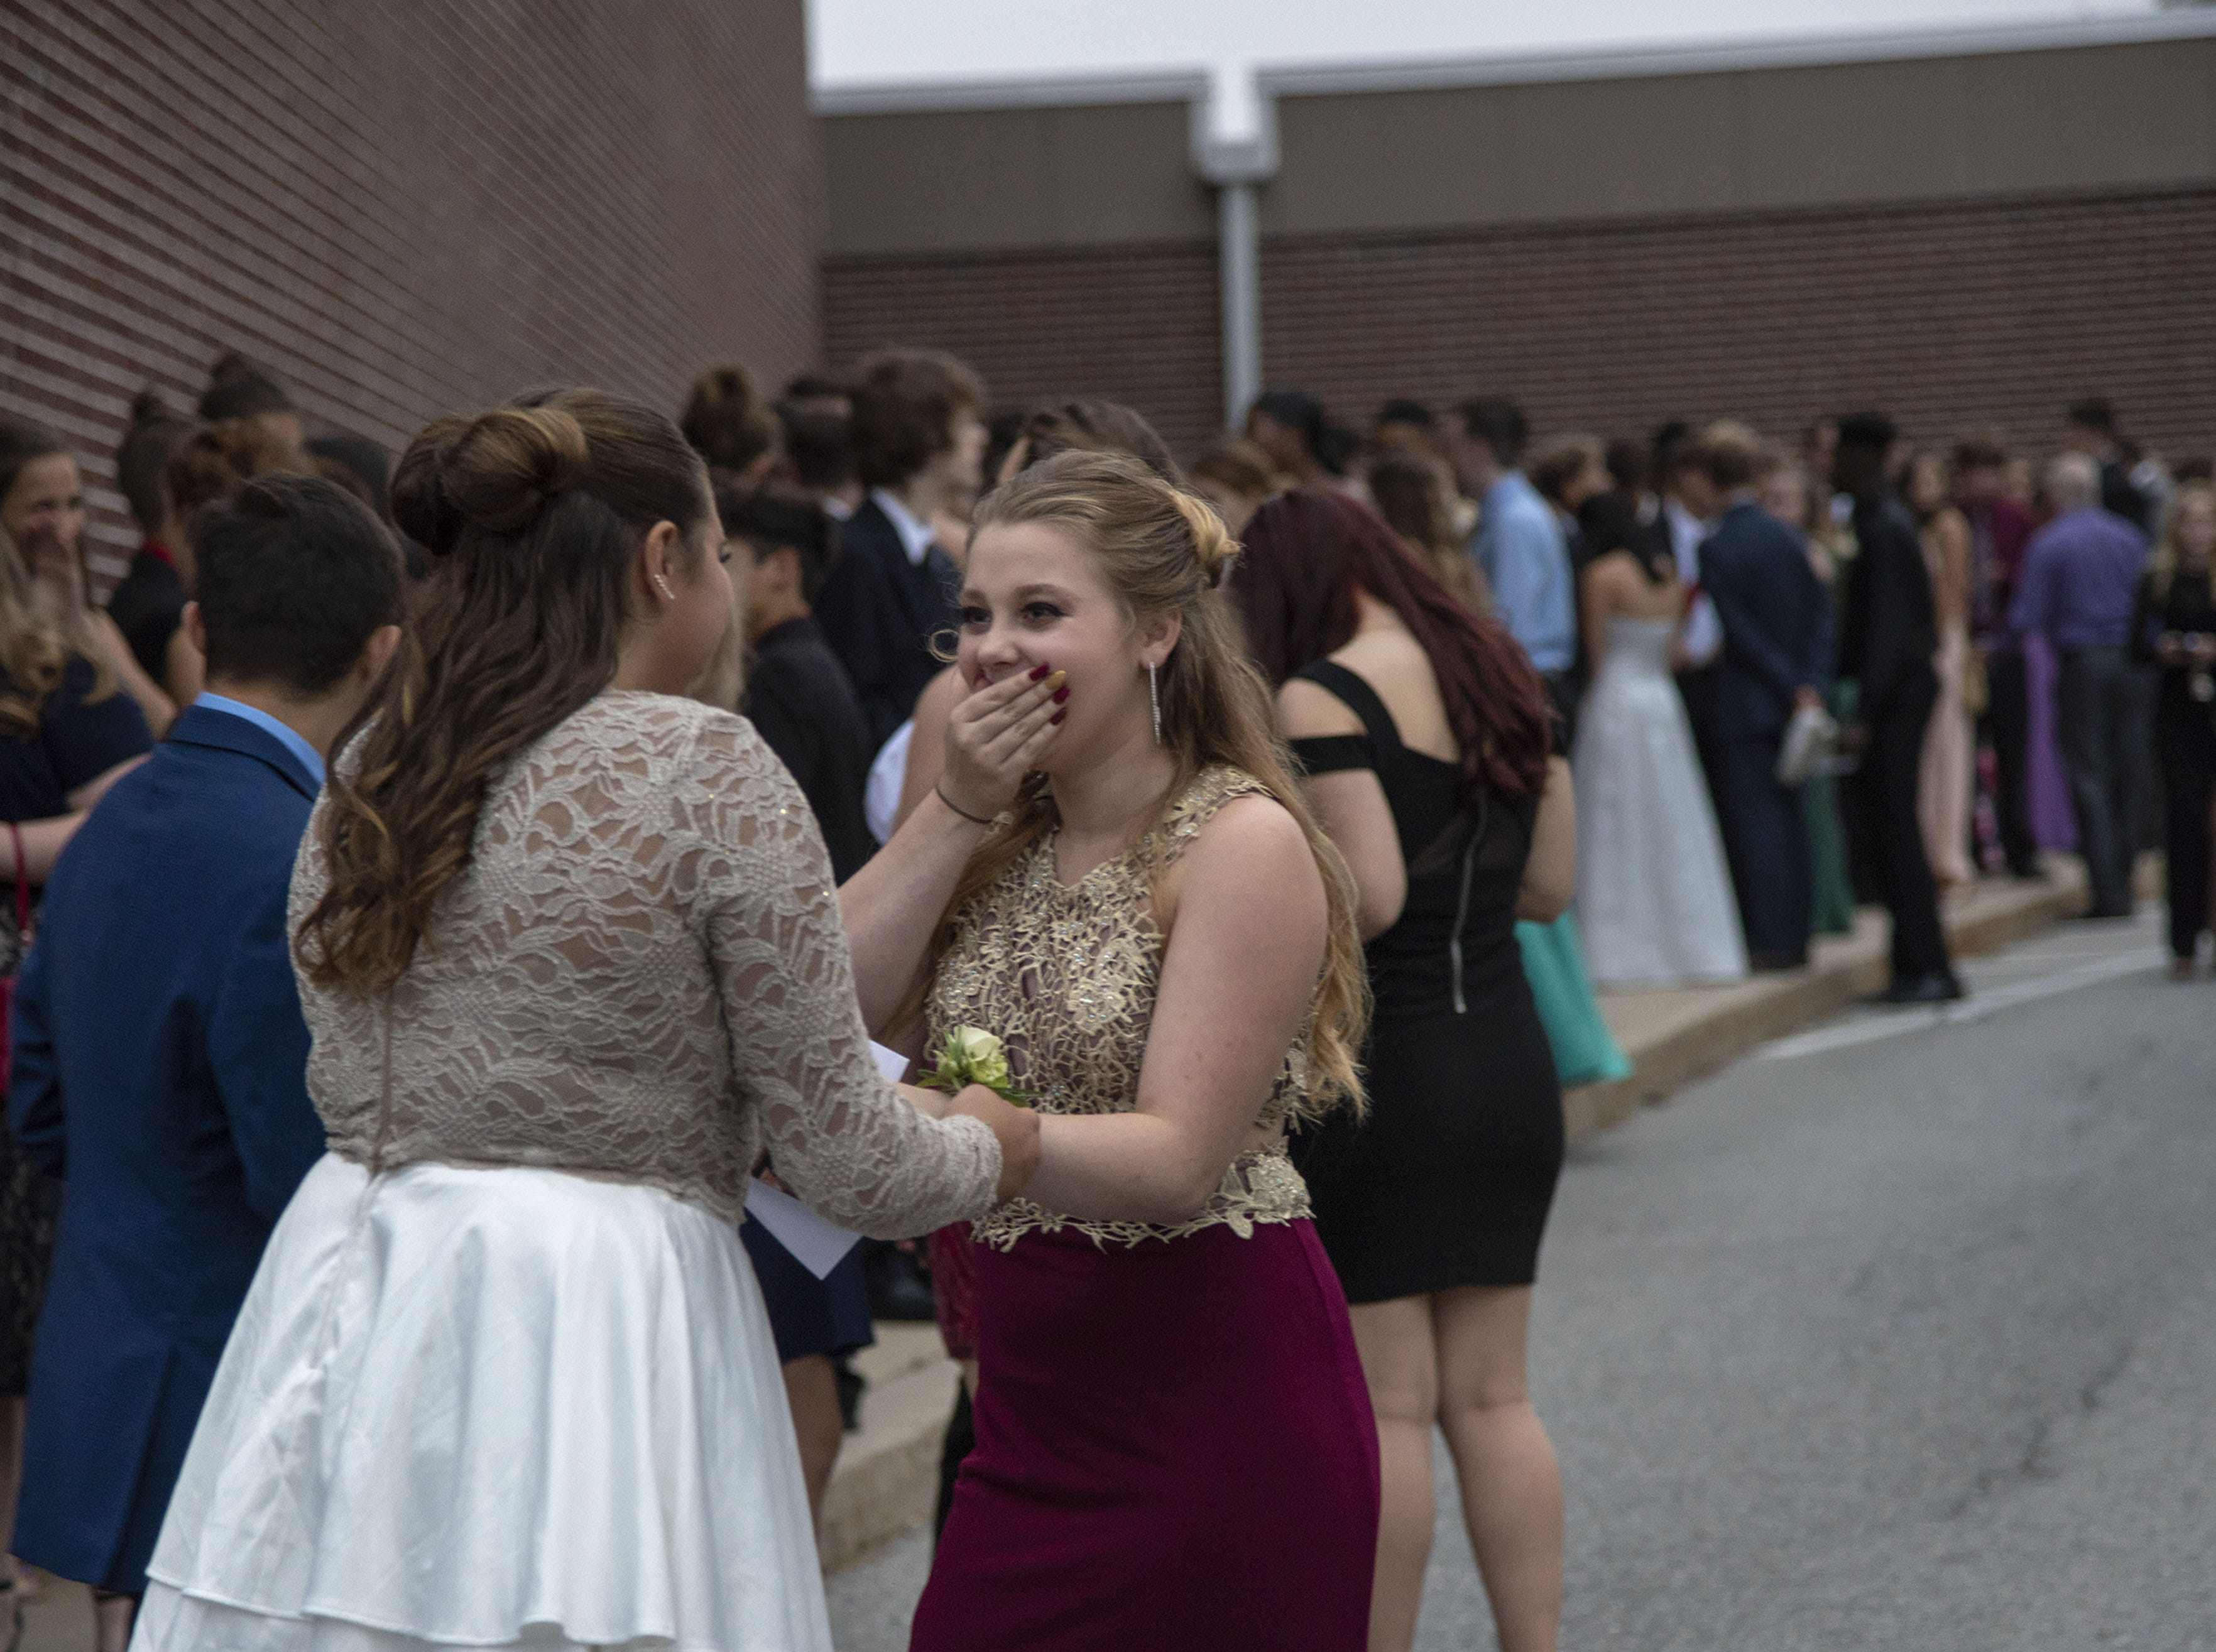 Students line up to go inside for the Dallastown High School homecoming dance on Saturday, October 06, 2018.